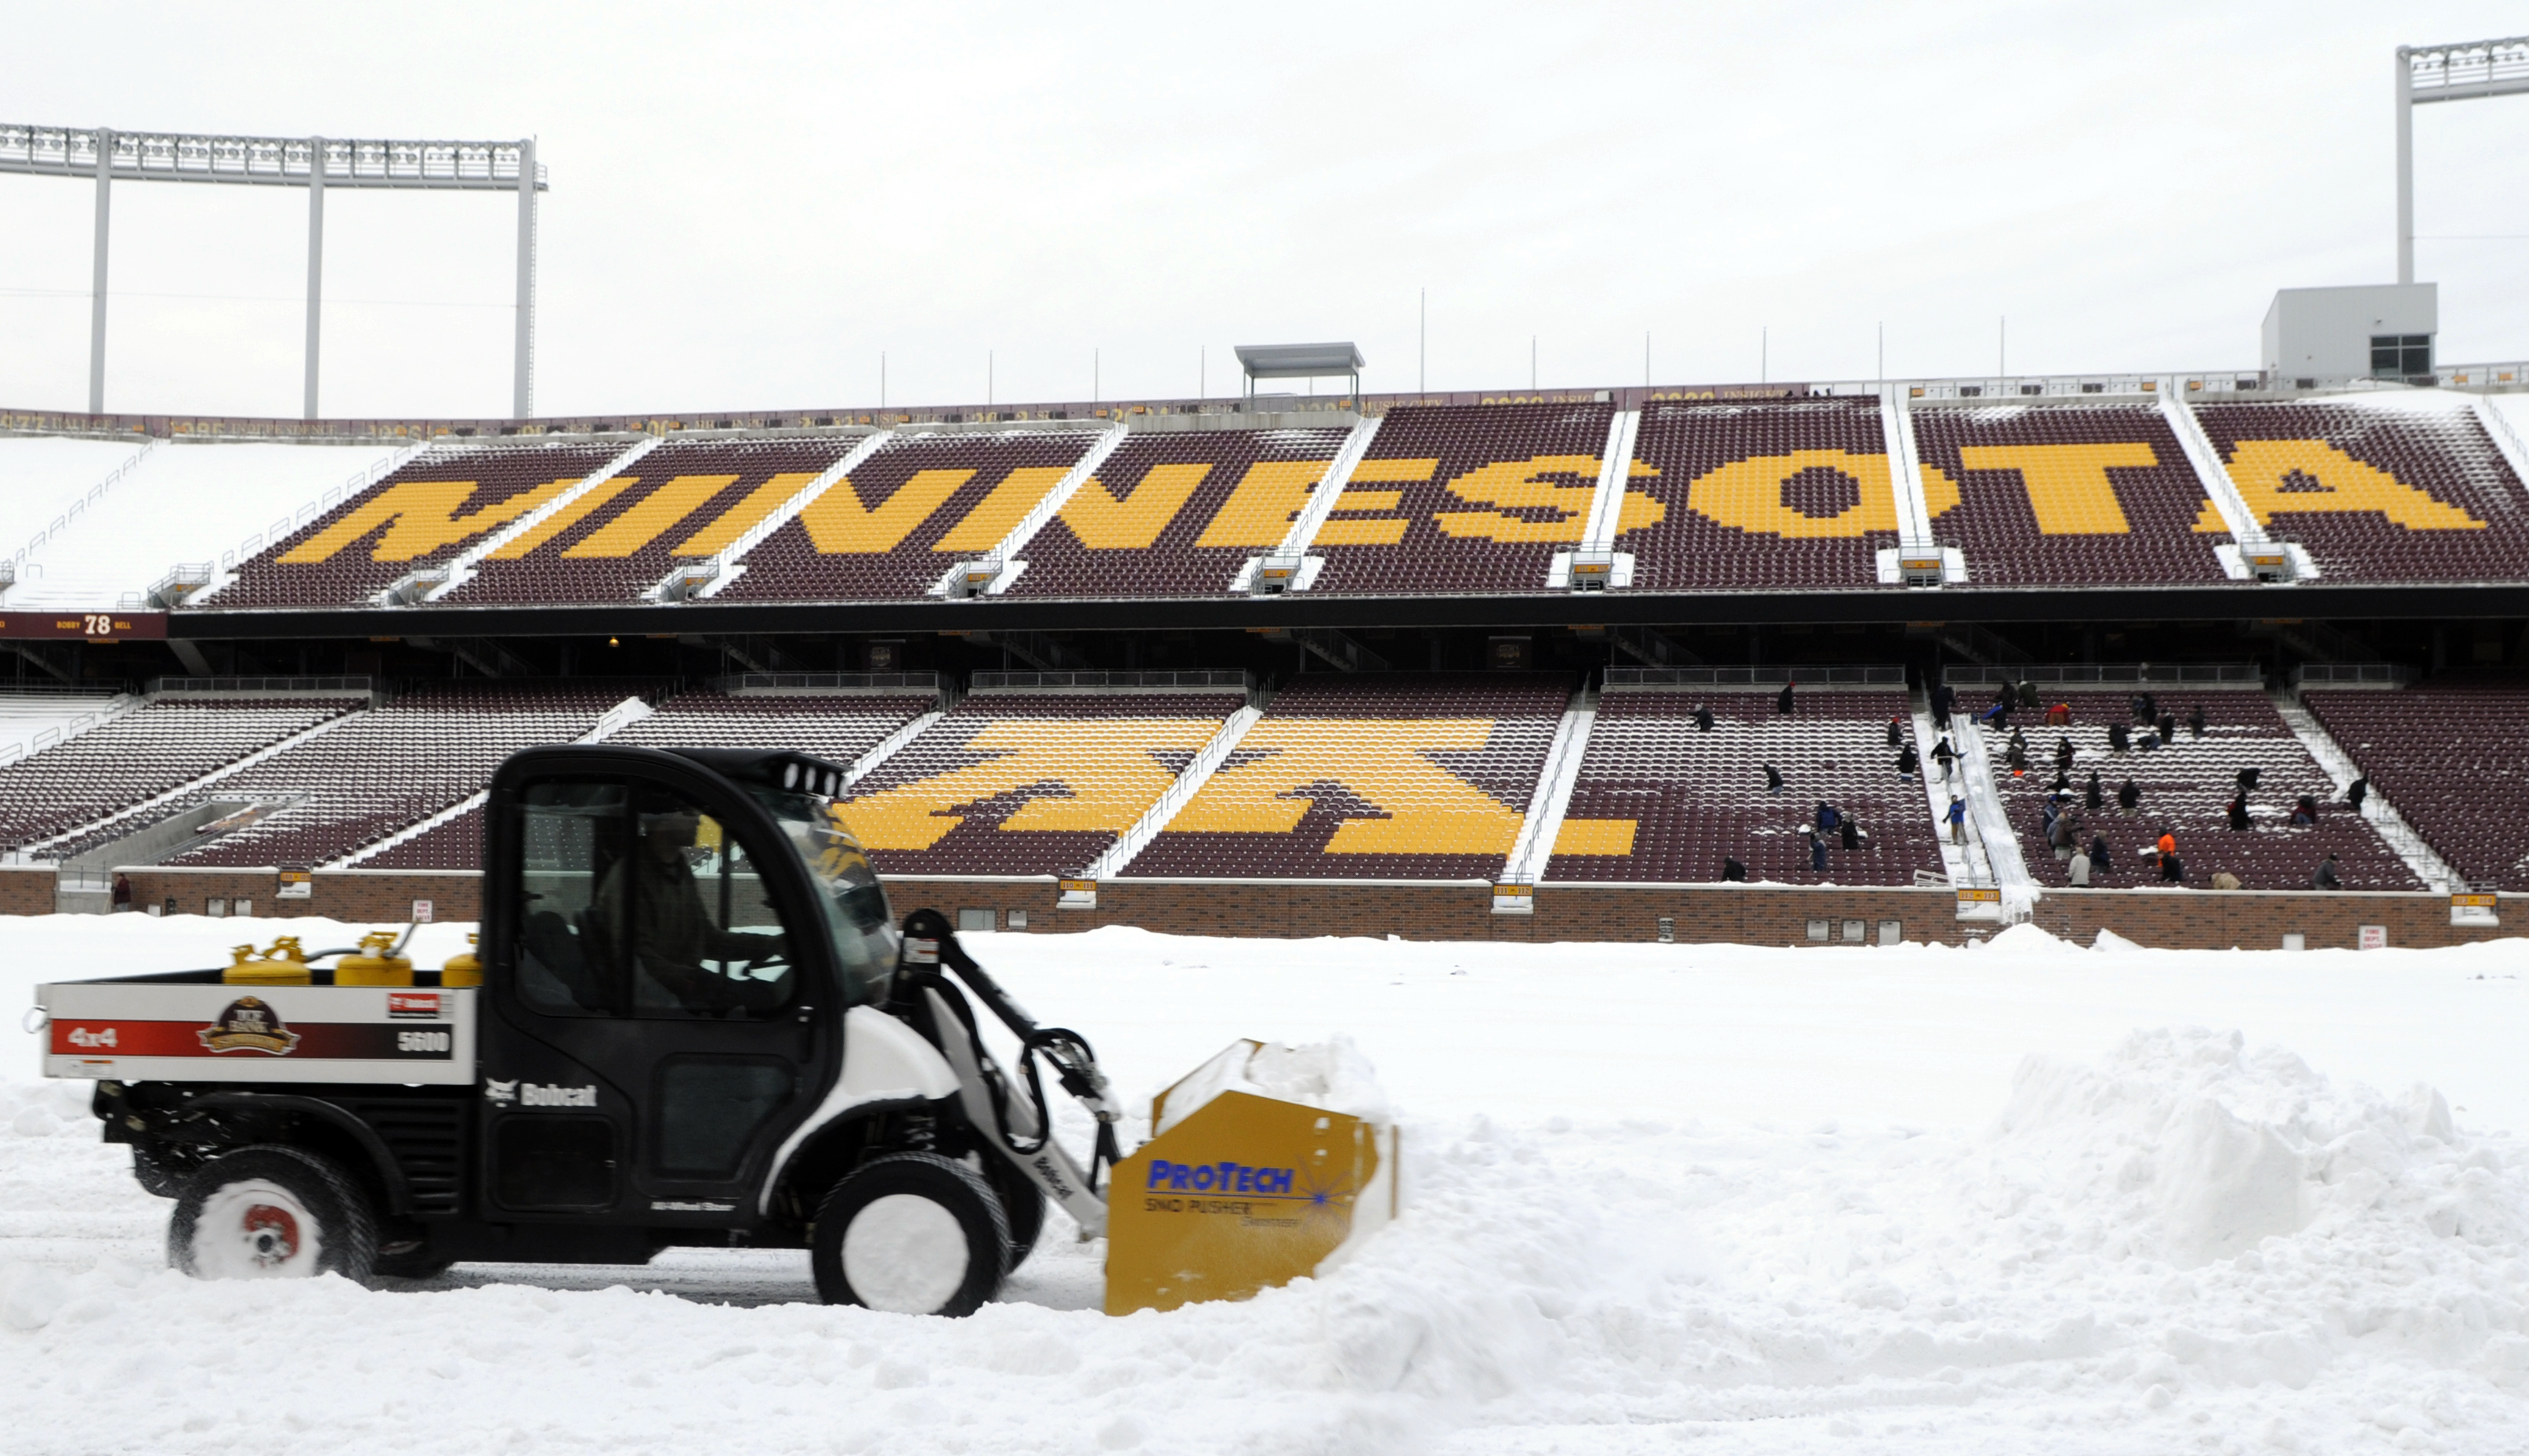 MINNEAPOLIS, MN - DECEMBER 15: Heavy machinery moves snow on the field as TCF Bank Stadium prepares for a potential monday night football game between the Minnesota Vikings and Chicago Bears on December 15, 2010 in Minneapolis, Minnesota. Preparations are